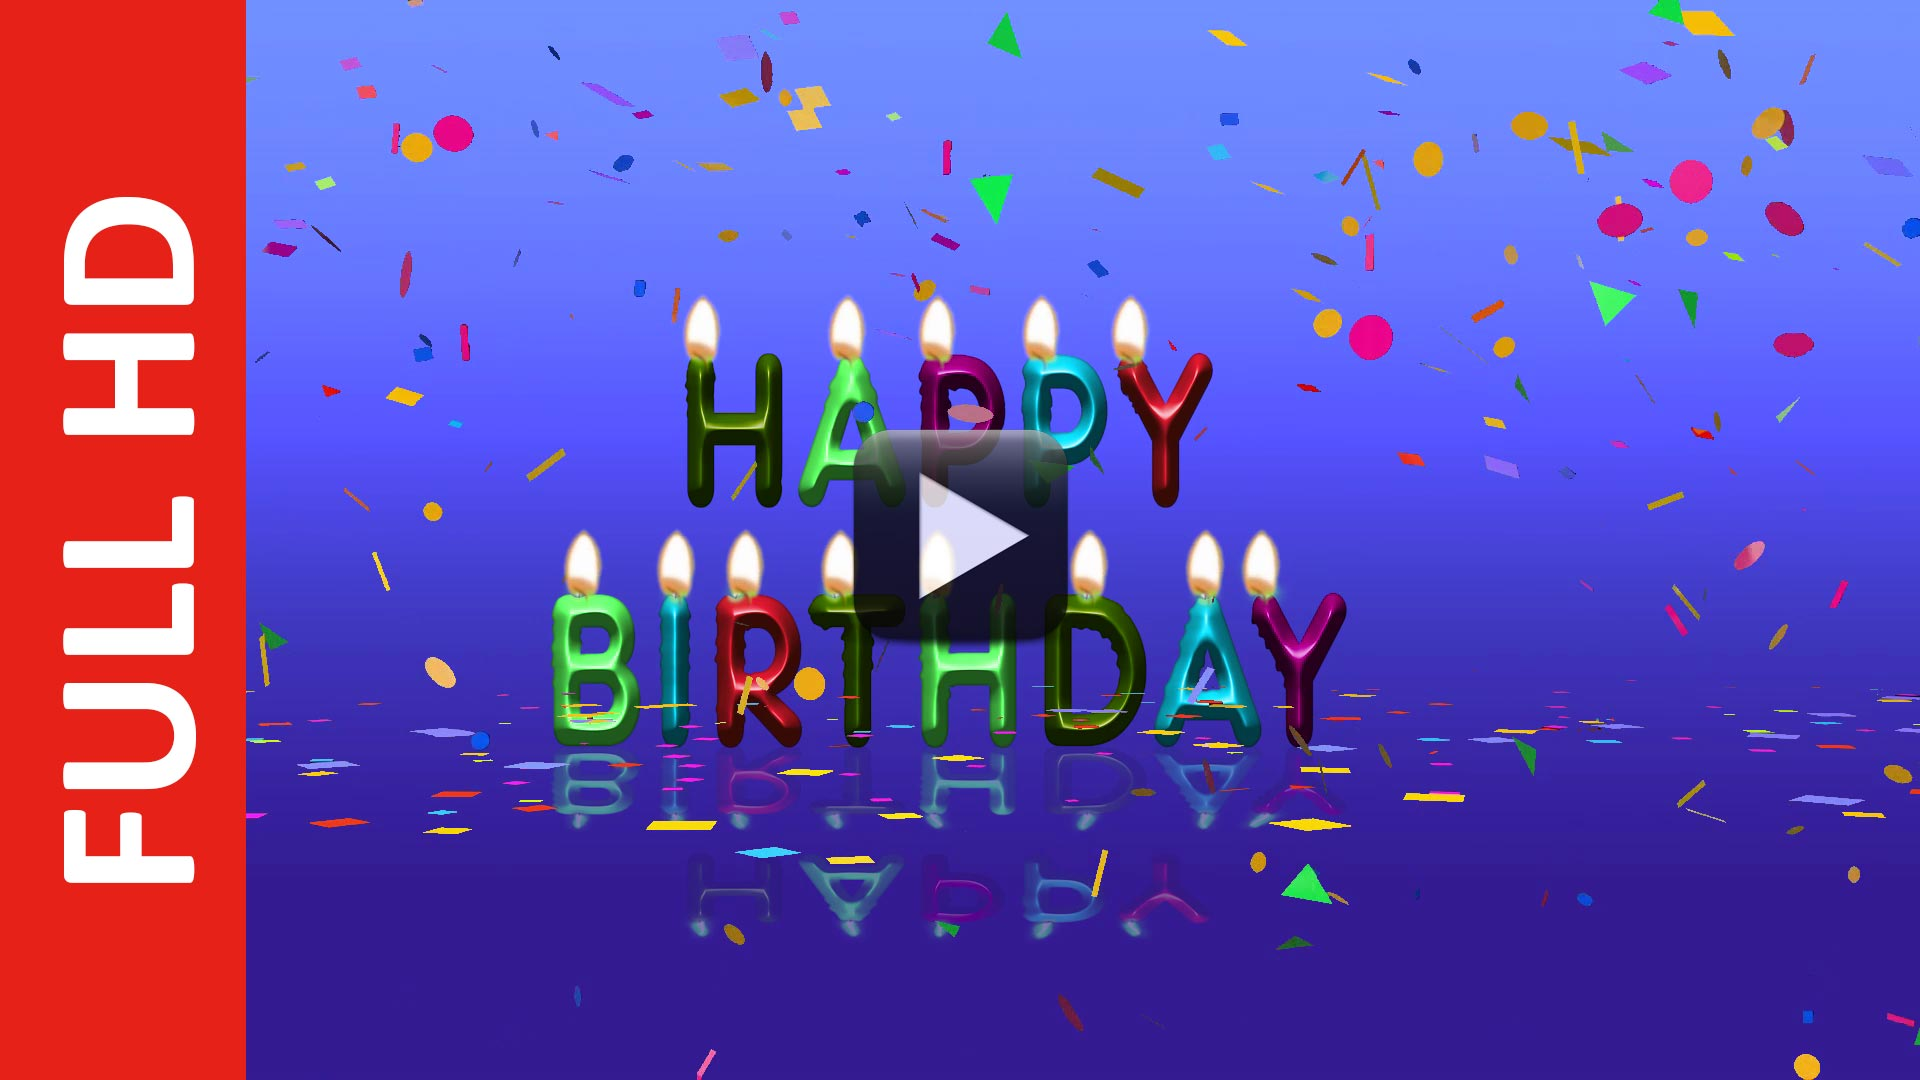 Colorful Happy Birthday Animation Video Free Download All Design